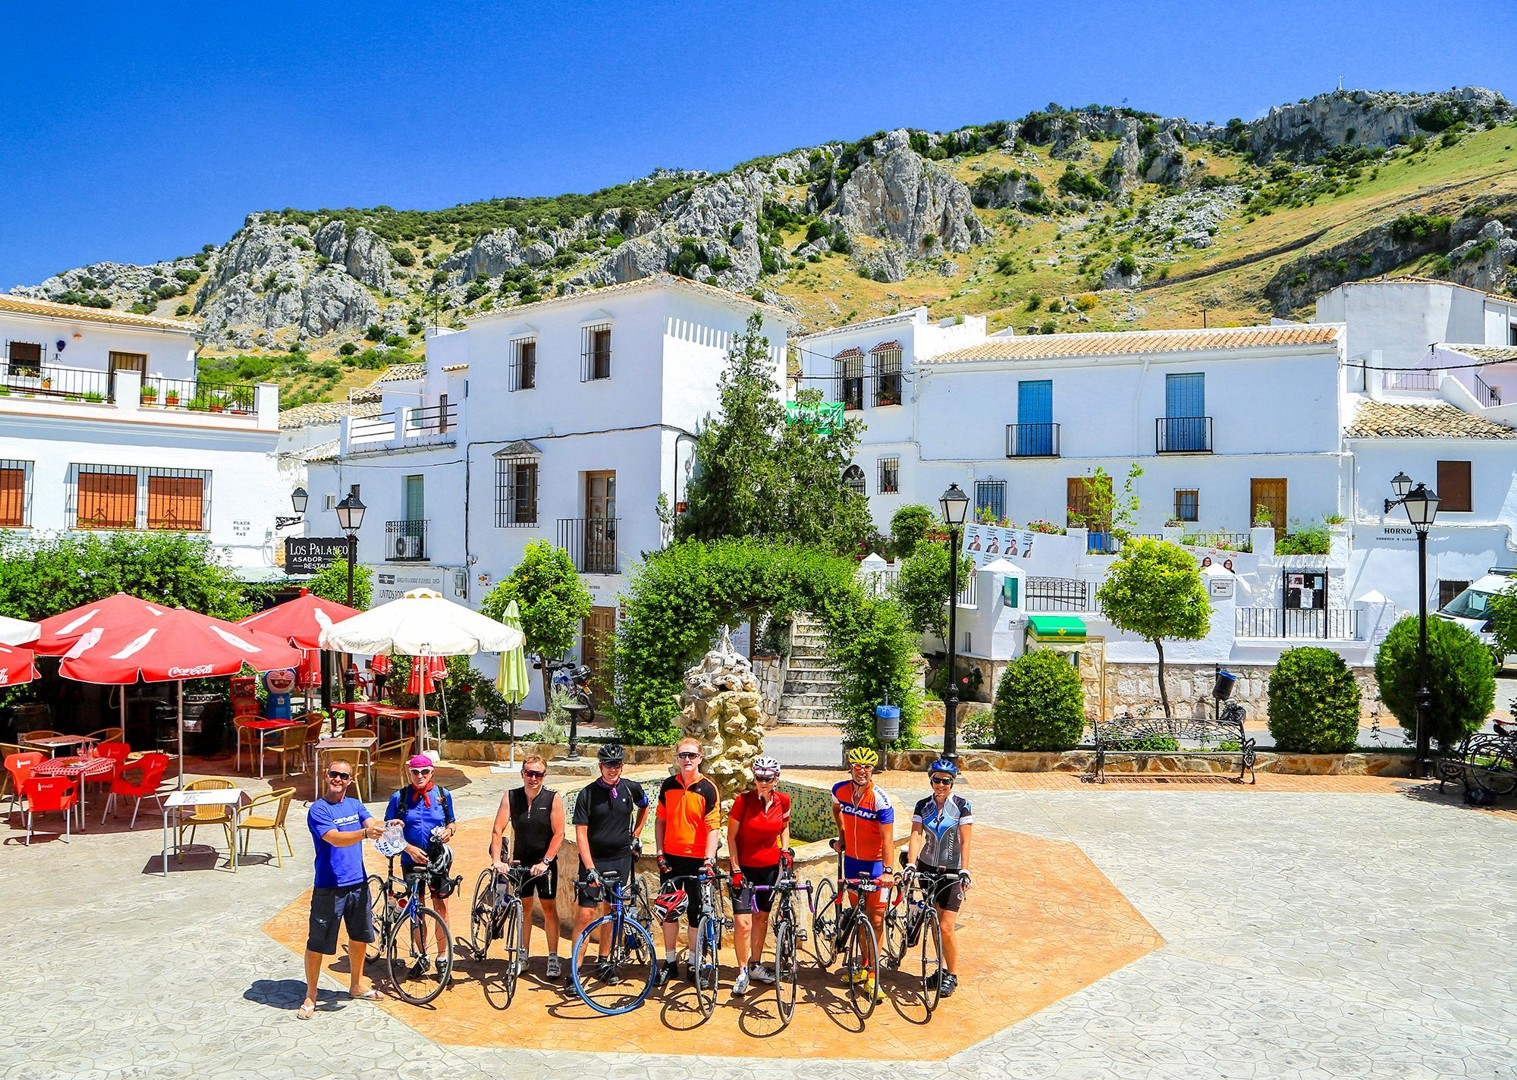 group-cycling-guided-road-holiday-in-spain-north-to-south.jpg - Spain - Basque Country to Andalucia - North to South (21 Days) - Guided Road Cycling Holiday - Road Cycling